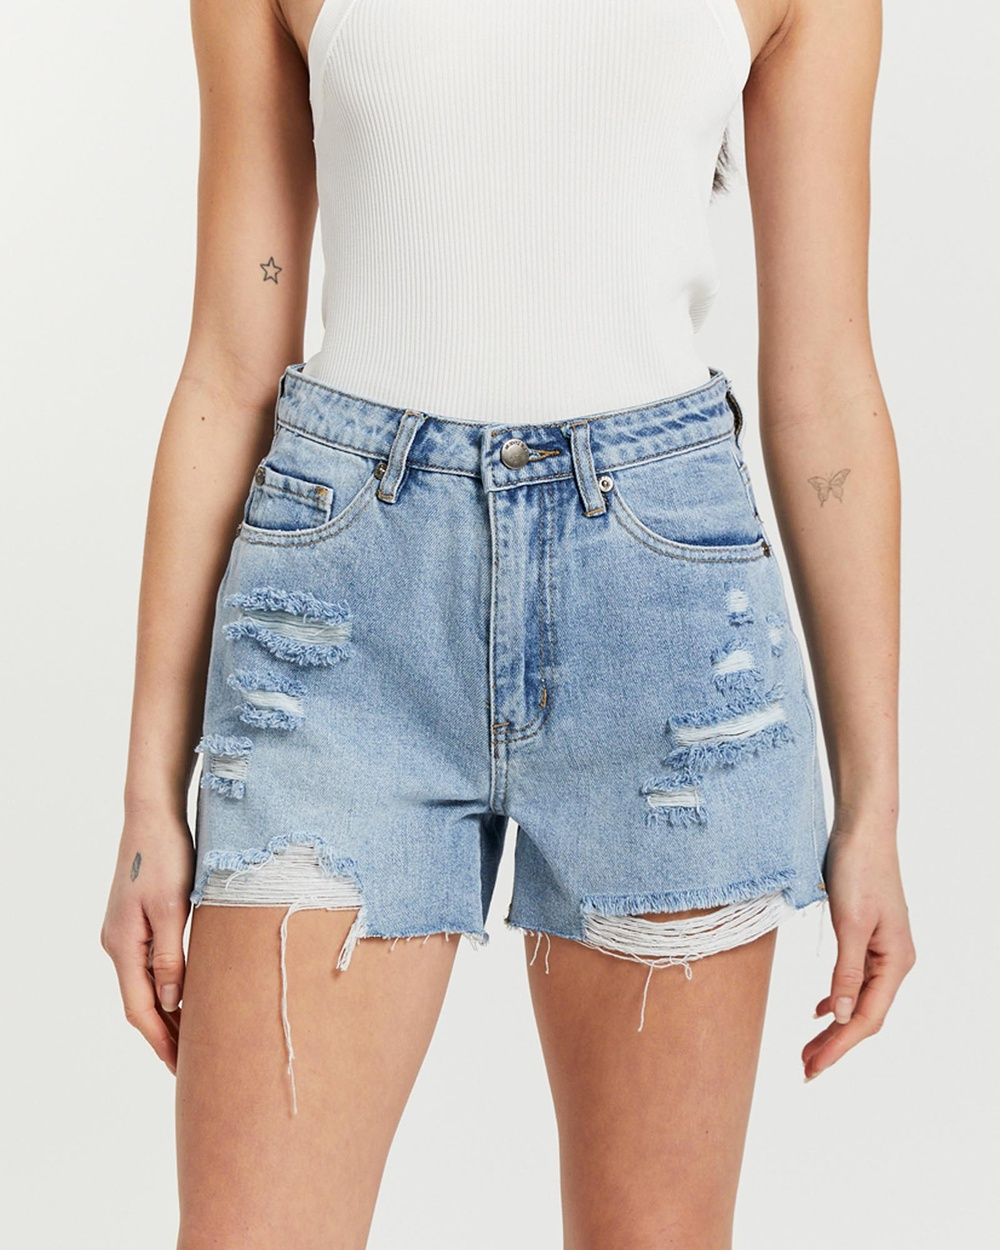 All About Eve Murphy Shorts Denim Heritage Blue